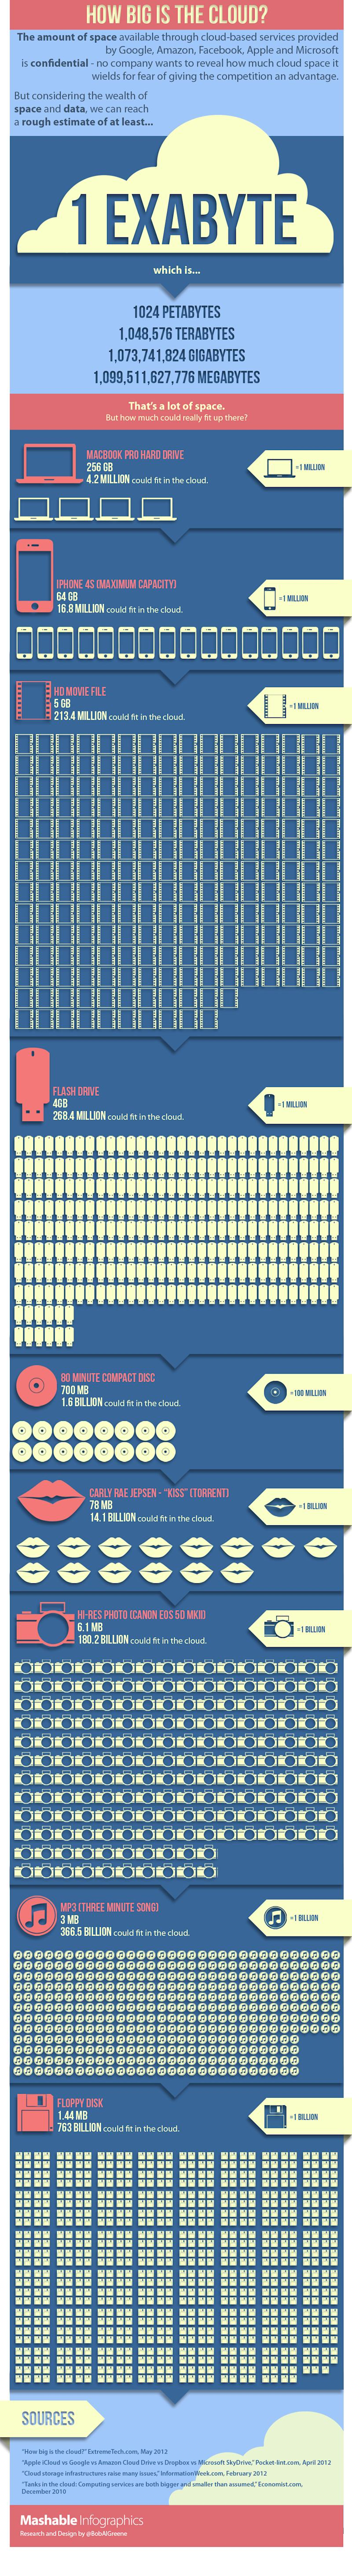 How Big Is the Cloud? [INFOGRAPHIC]